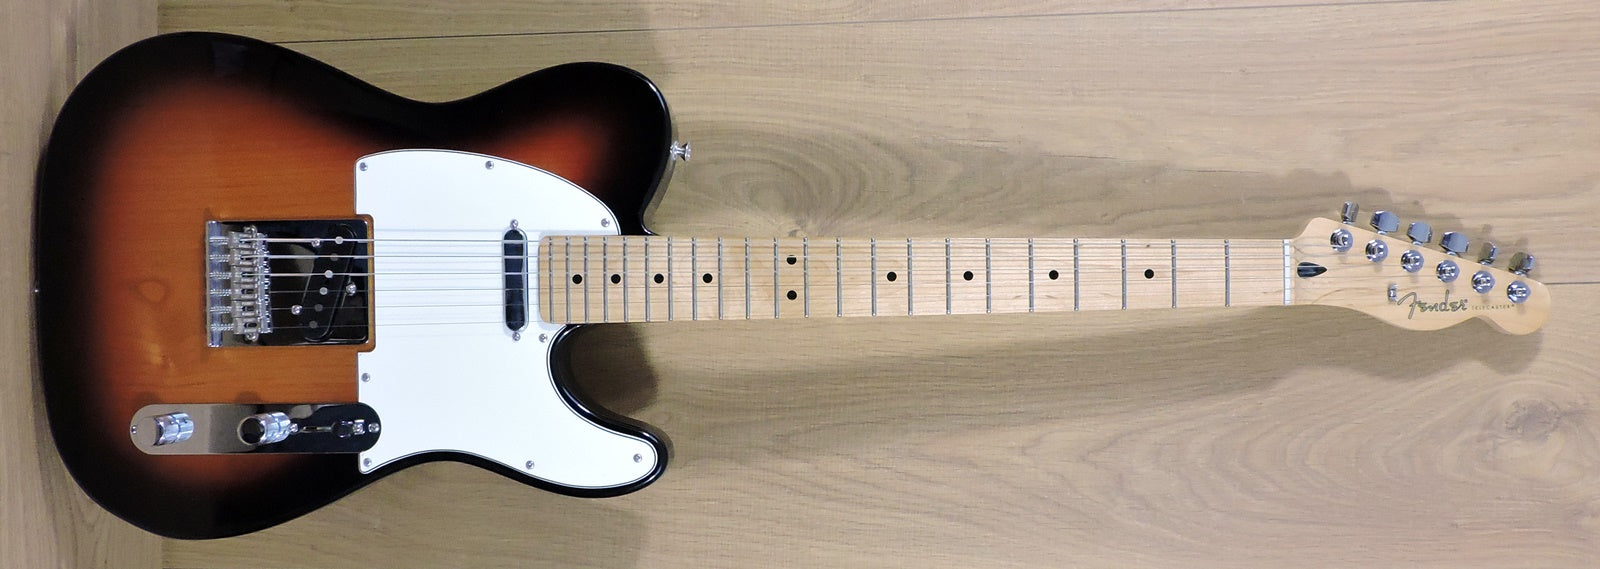 Fender Player Telecaster 3 Colour Sunburst - Slightly Marked - REDUCED